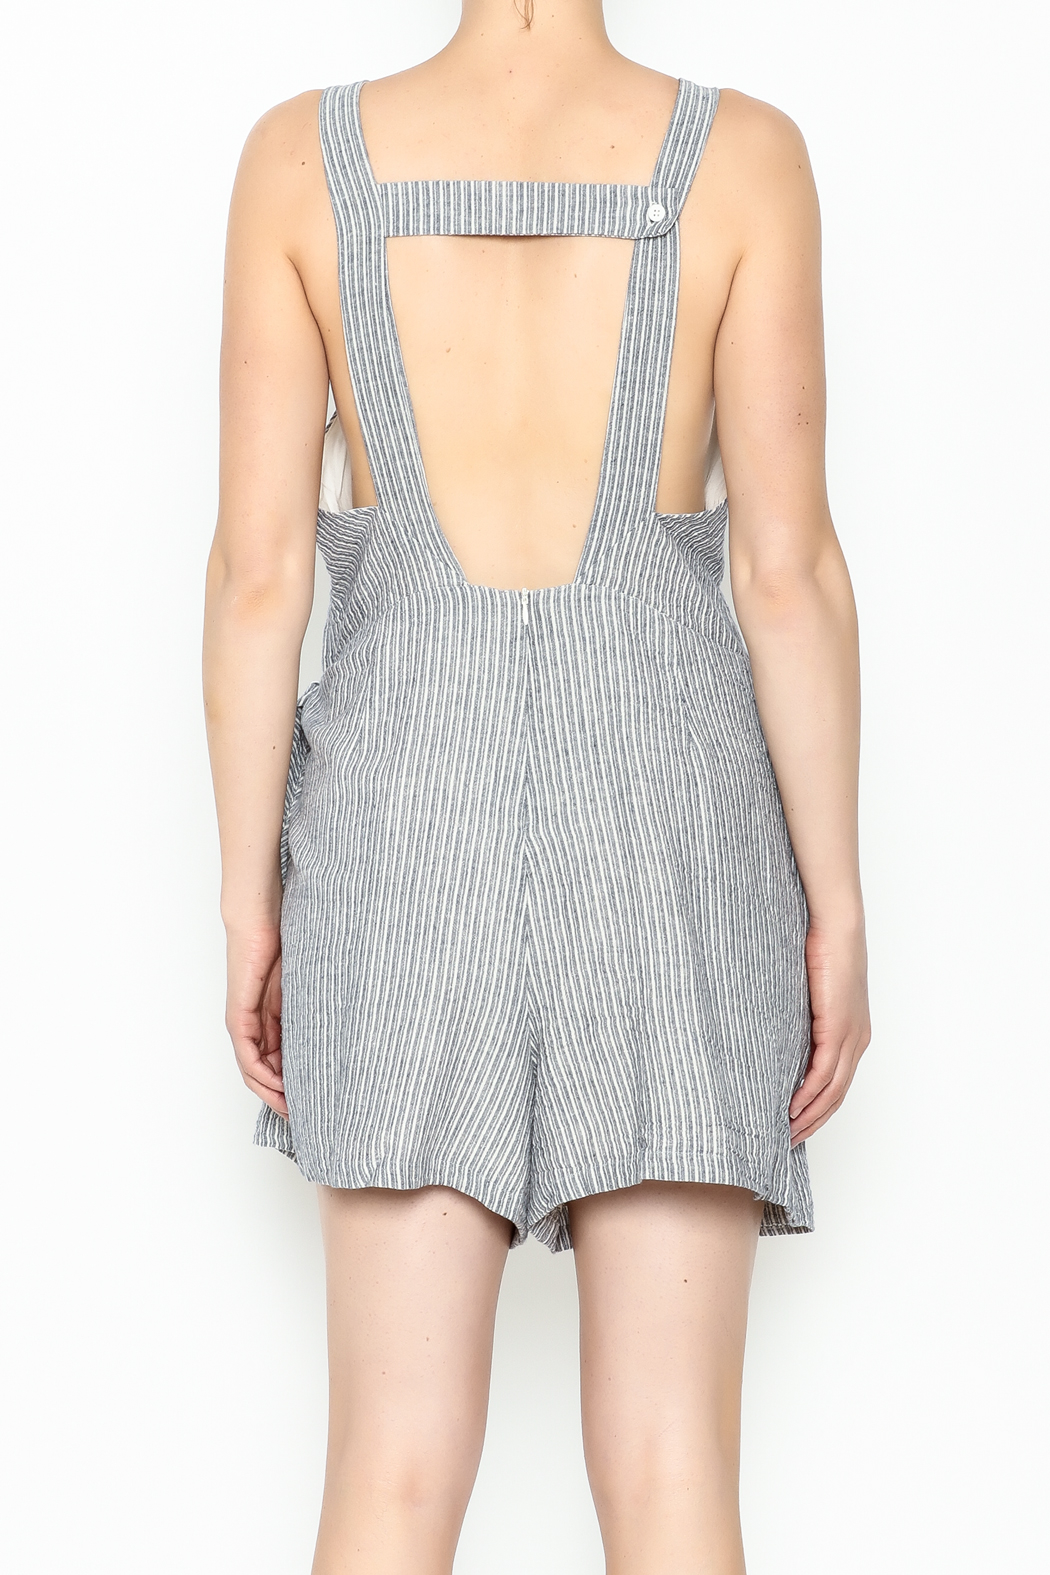 Pinkyotto Front Tie Skort Romper - Back Cropped Image